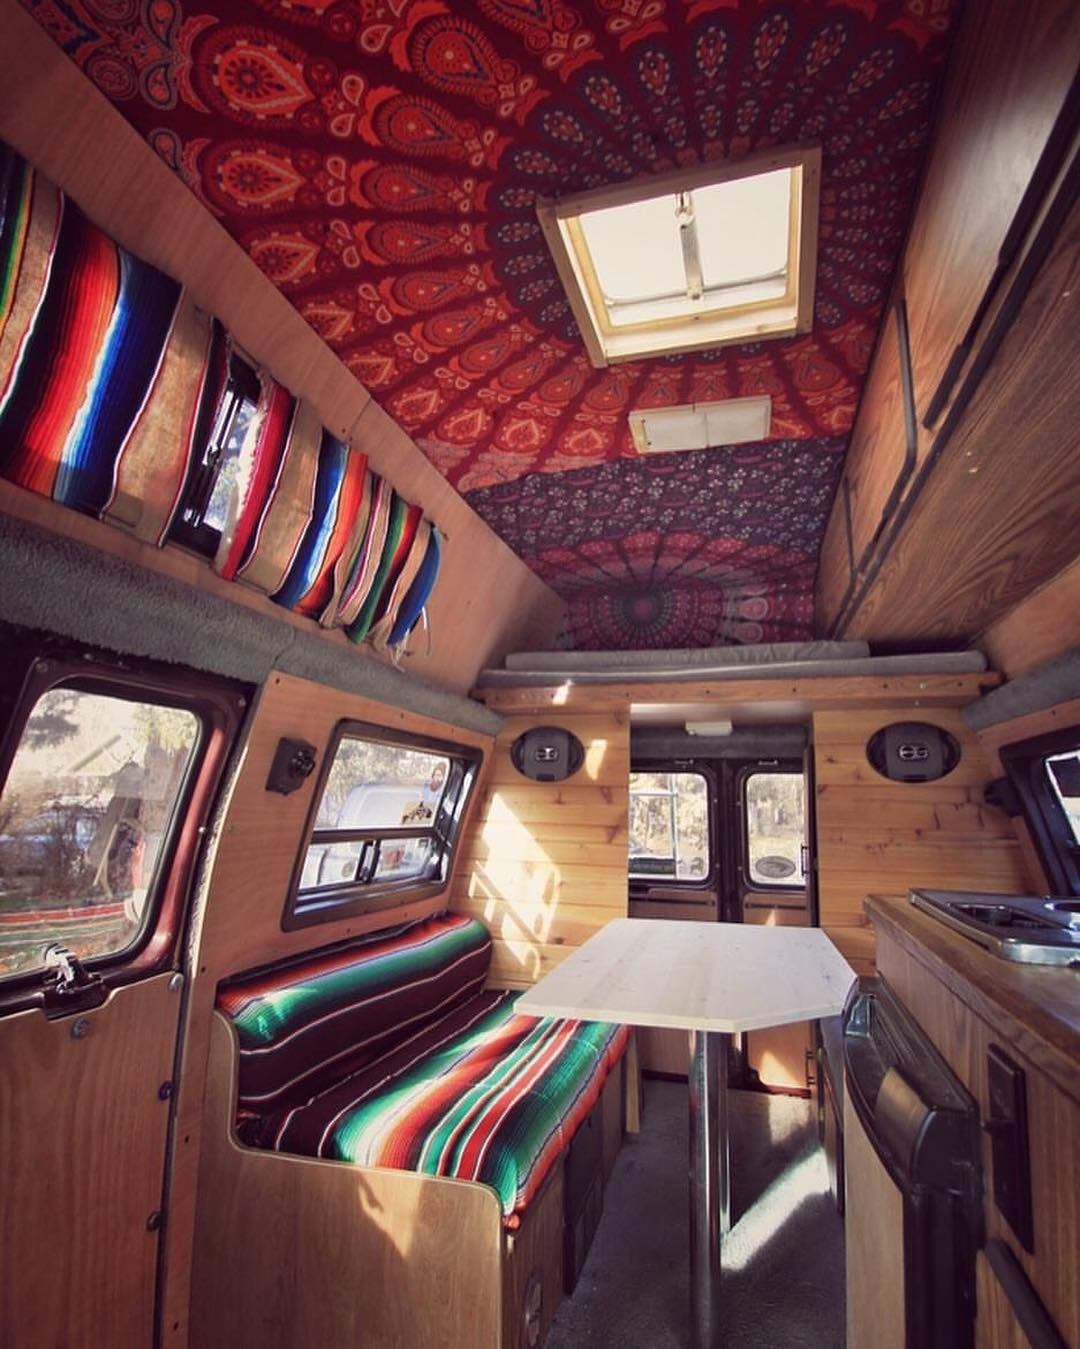 Crazy Van Decoration Ideas 24